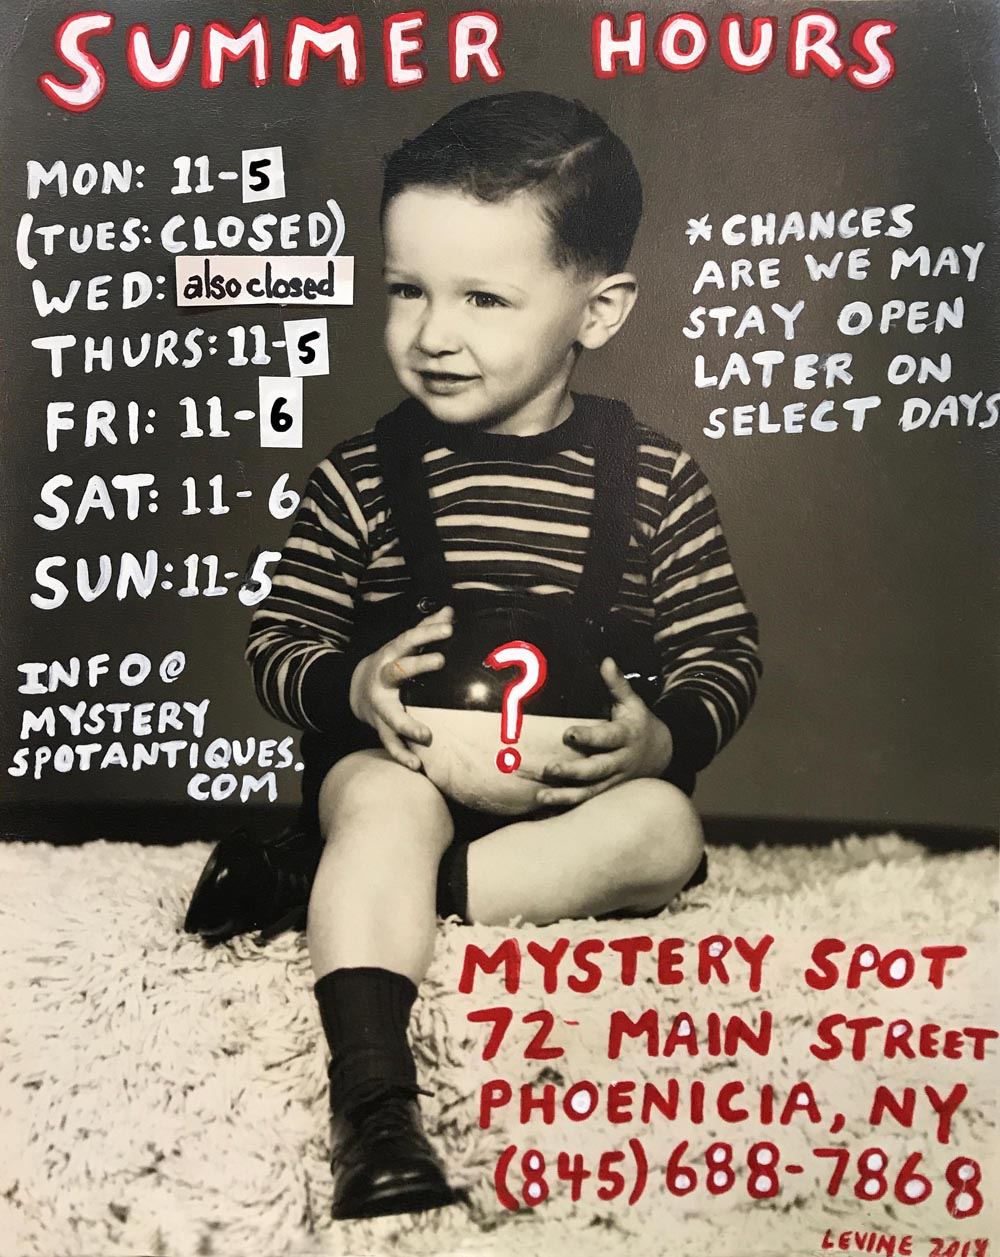 Summer hours mystery spot sign 2019 blog